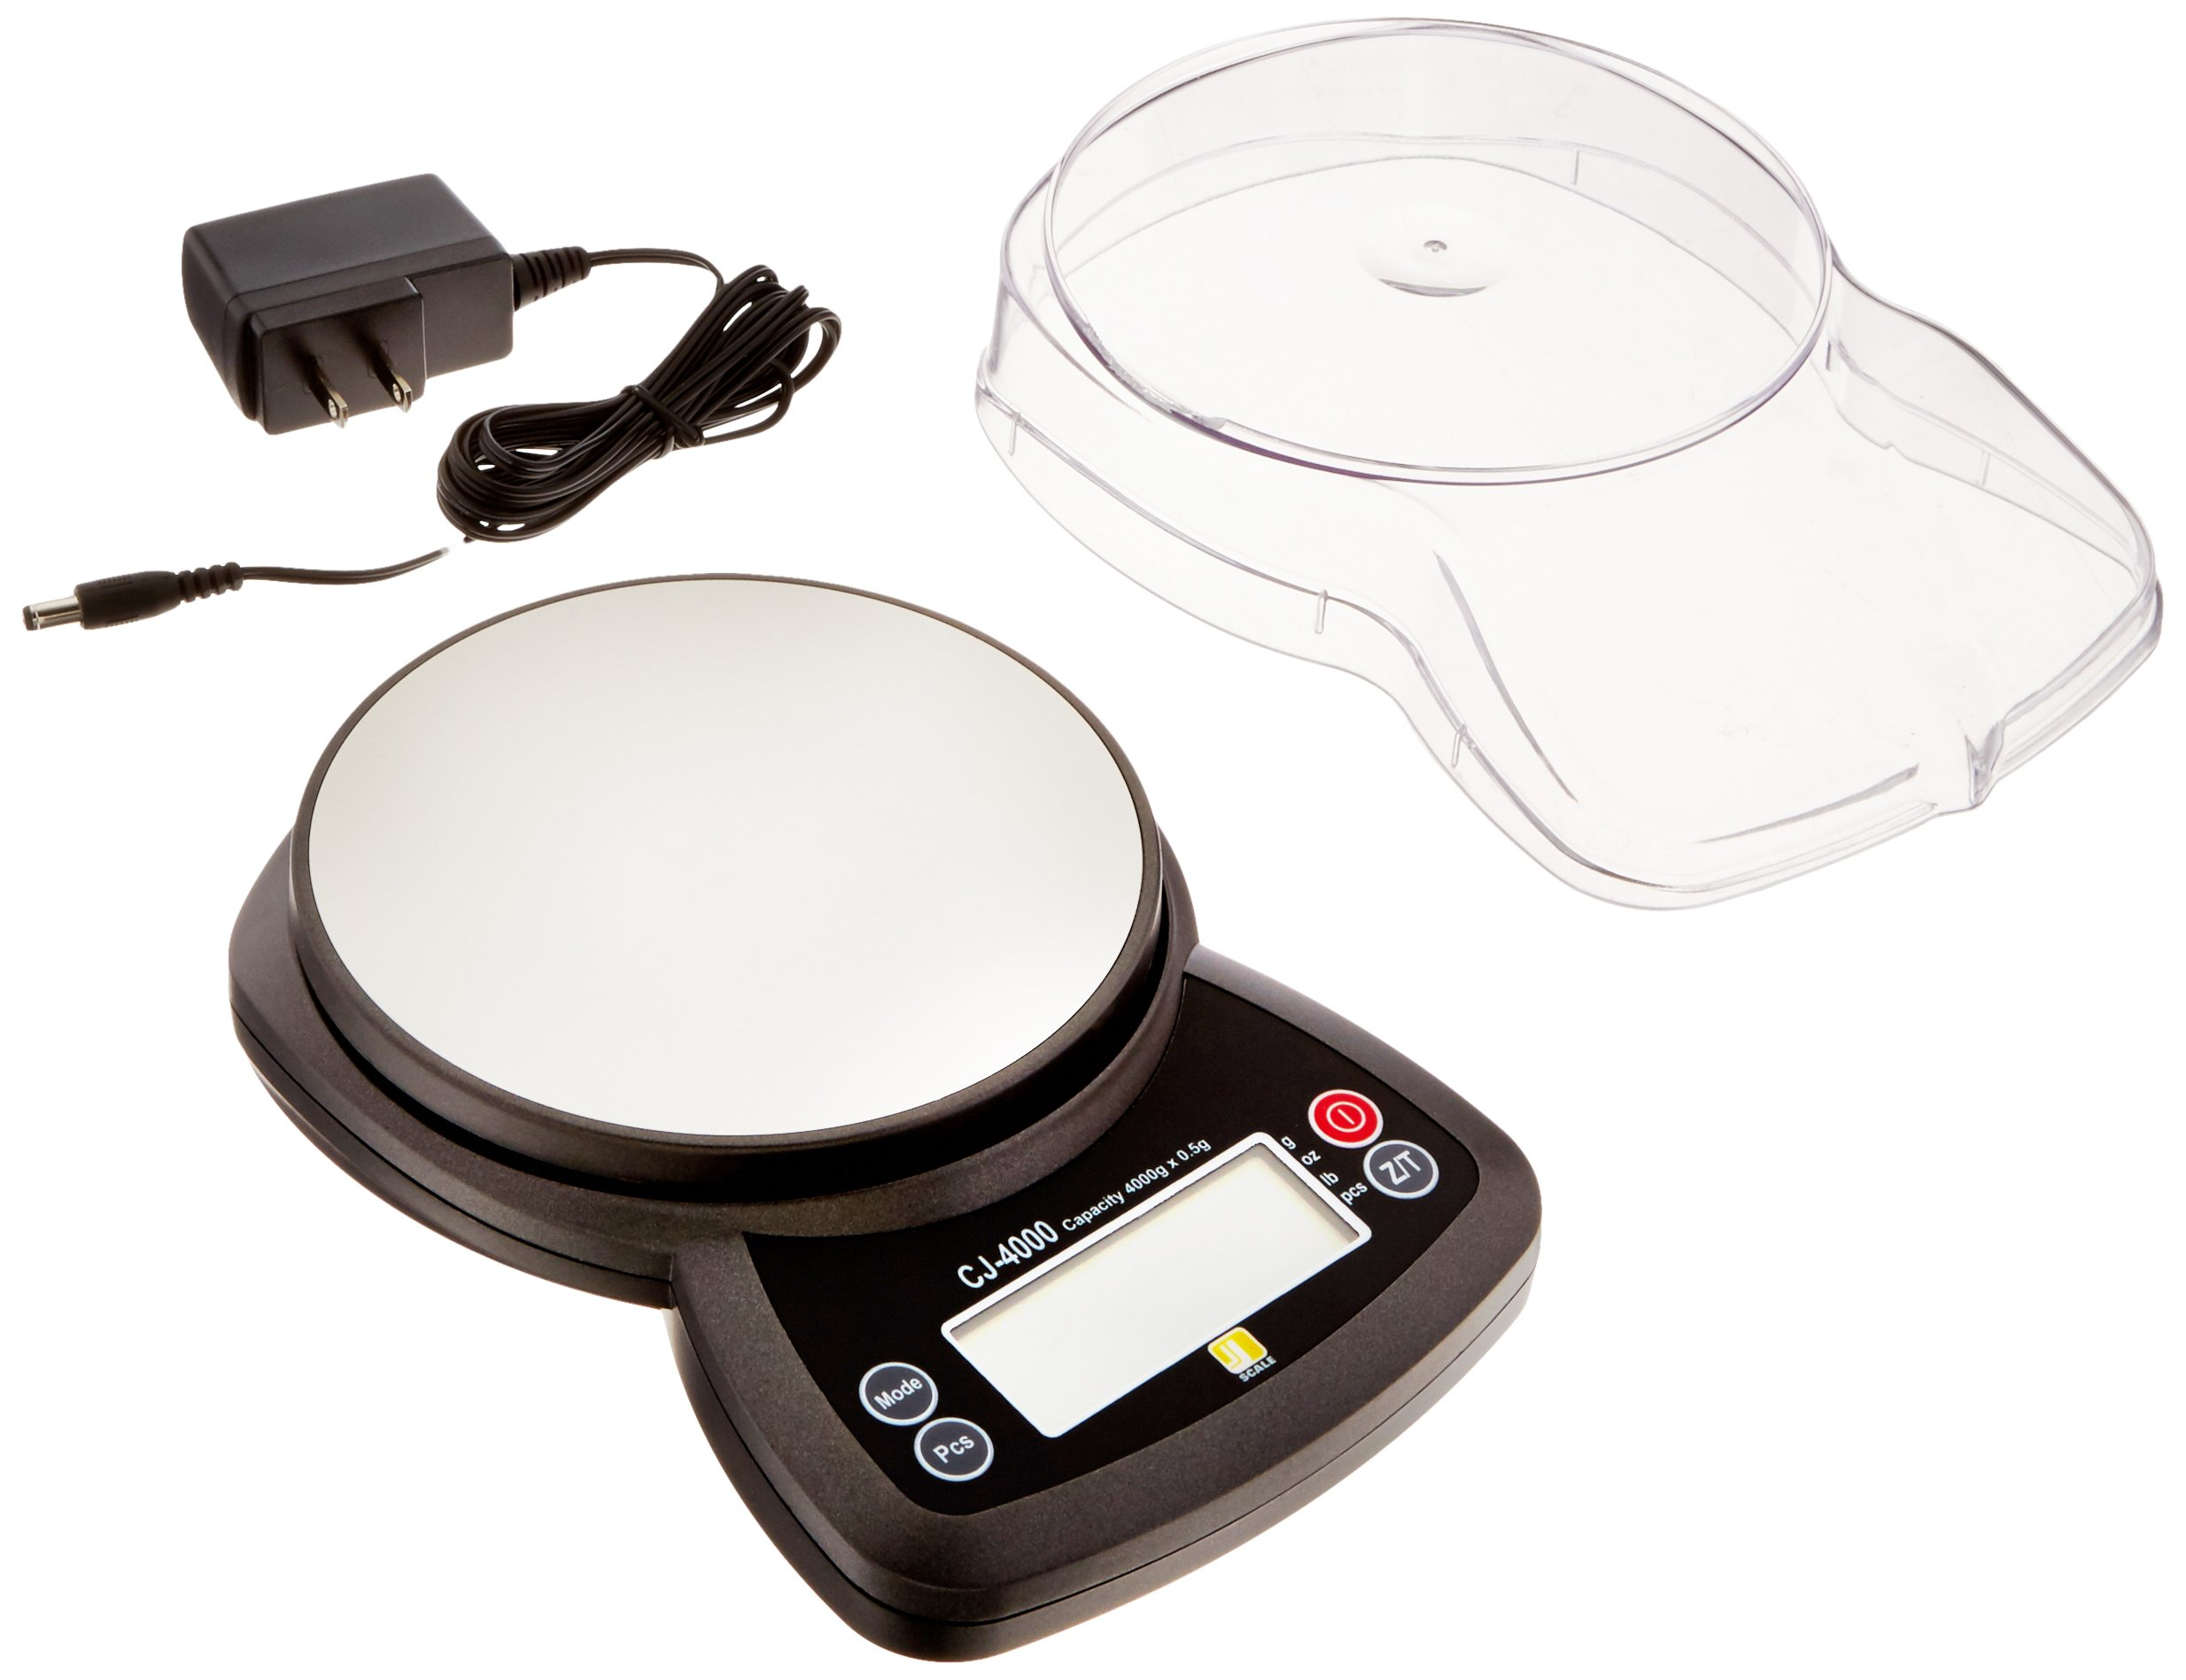 Jennings CJ-4000 Compact Digital Weigh Scale 4000g x 0.5g PCS JScale Black AC Adapter by Jennings